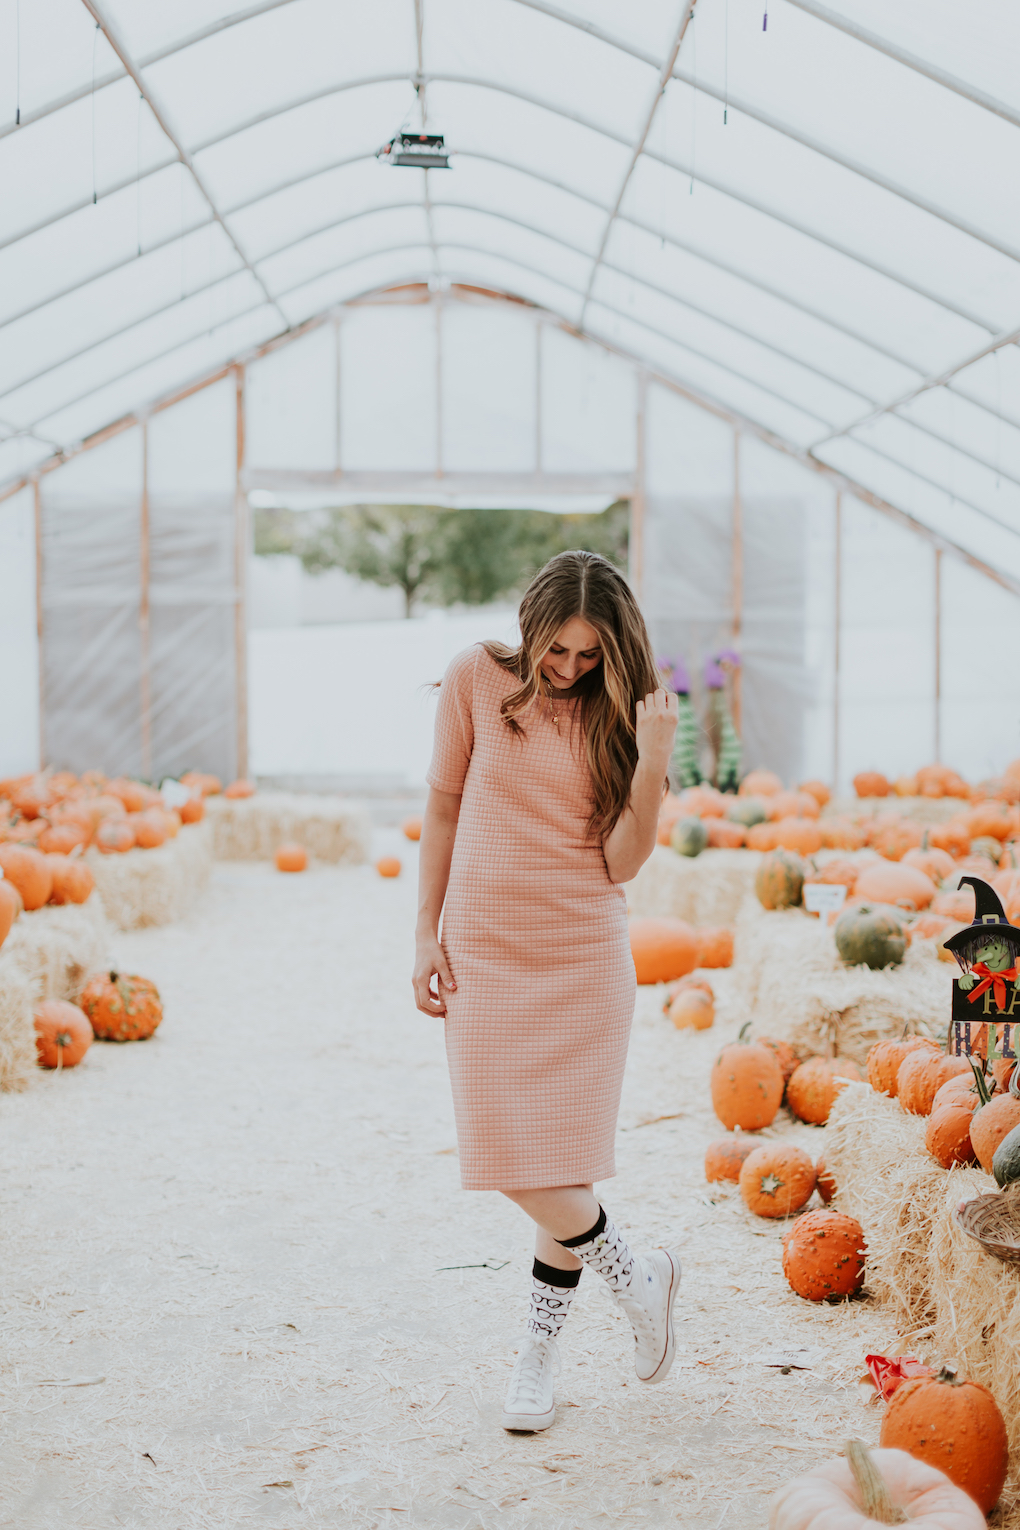 girl in quilted pink dress with tall glasses socks and converse on standing at pumpkin patch with loosely curled brown hair